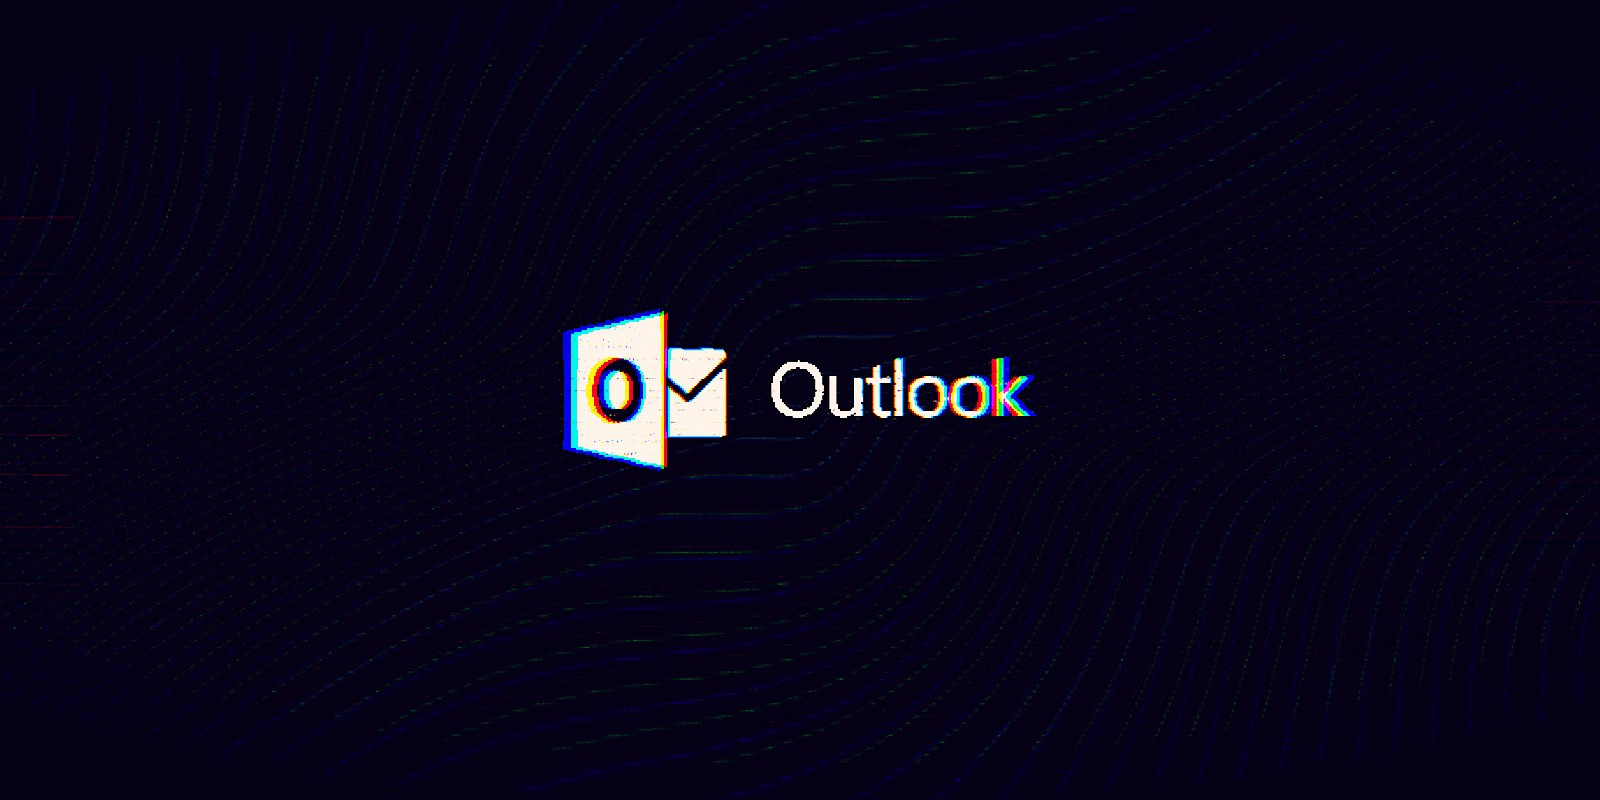 Microsoft fixes critical Outlook bug exploitable via preview pane